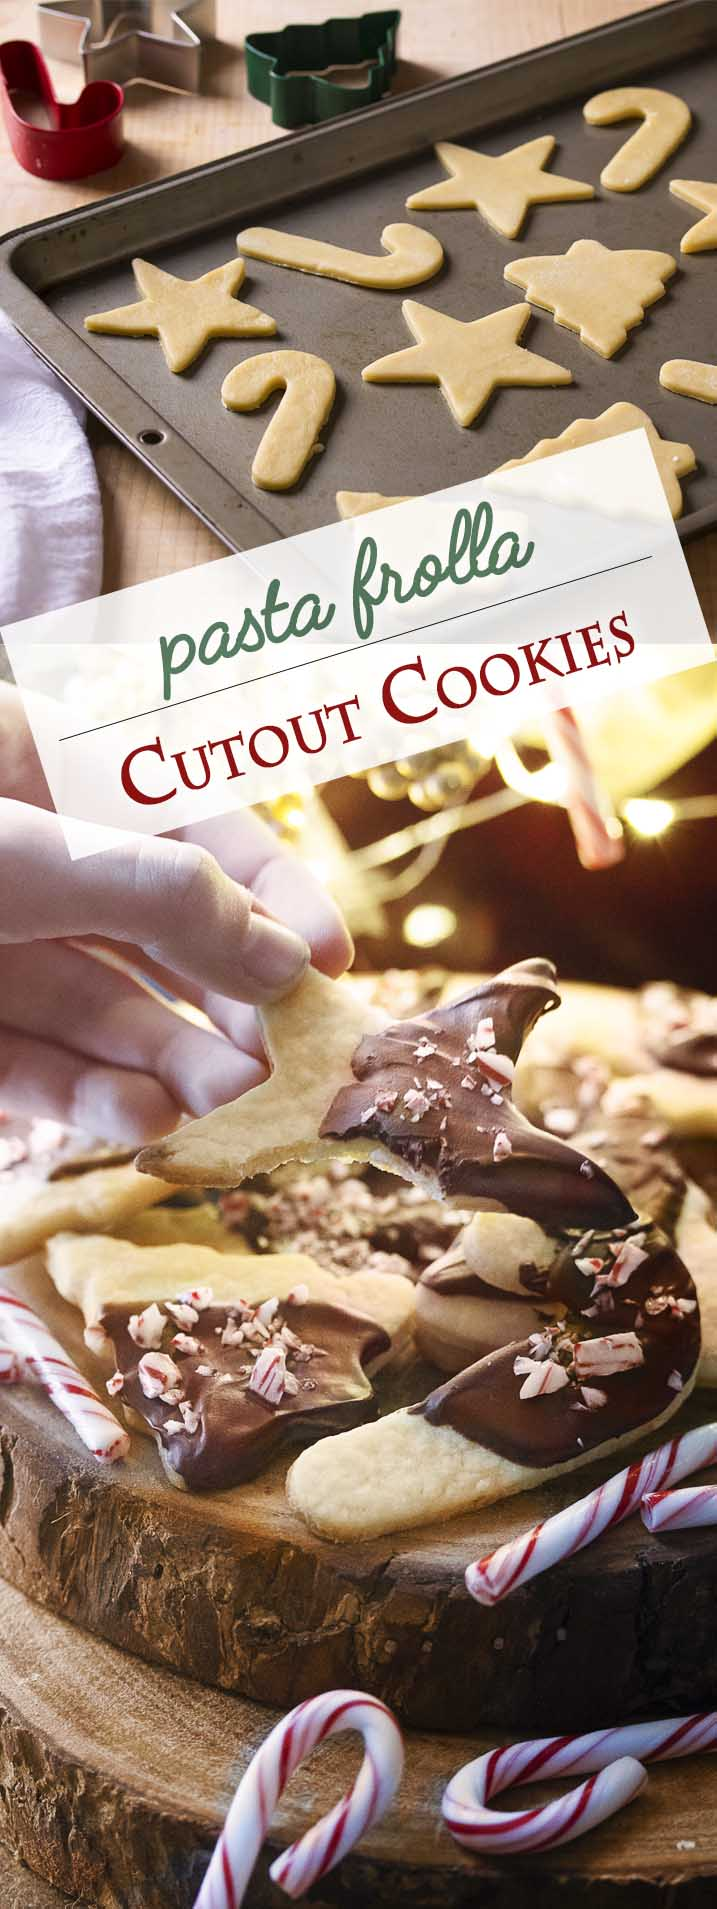 The Italian pastry dough, pasta frolla, is great for pies and tarts, but it is also great for Christmas cutout cookies! We like ours decorated with chocolate and mint. So easy! | justalittlebitofbacon.com